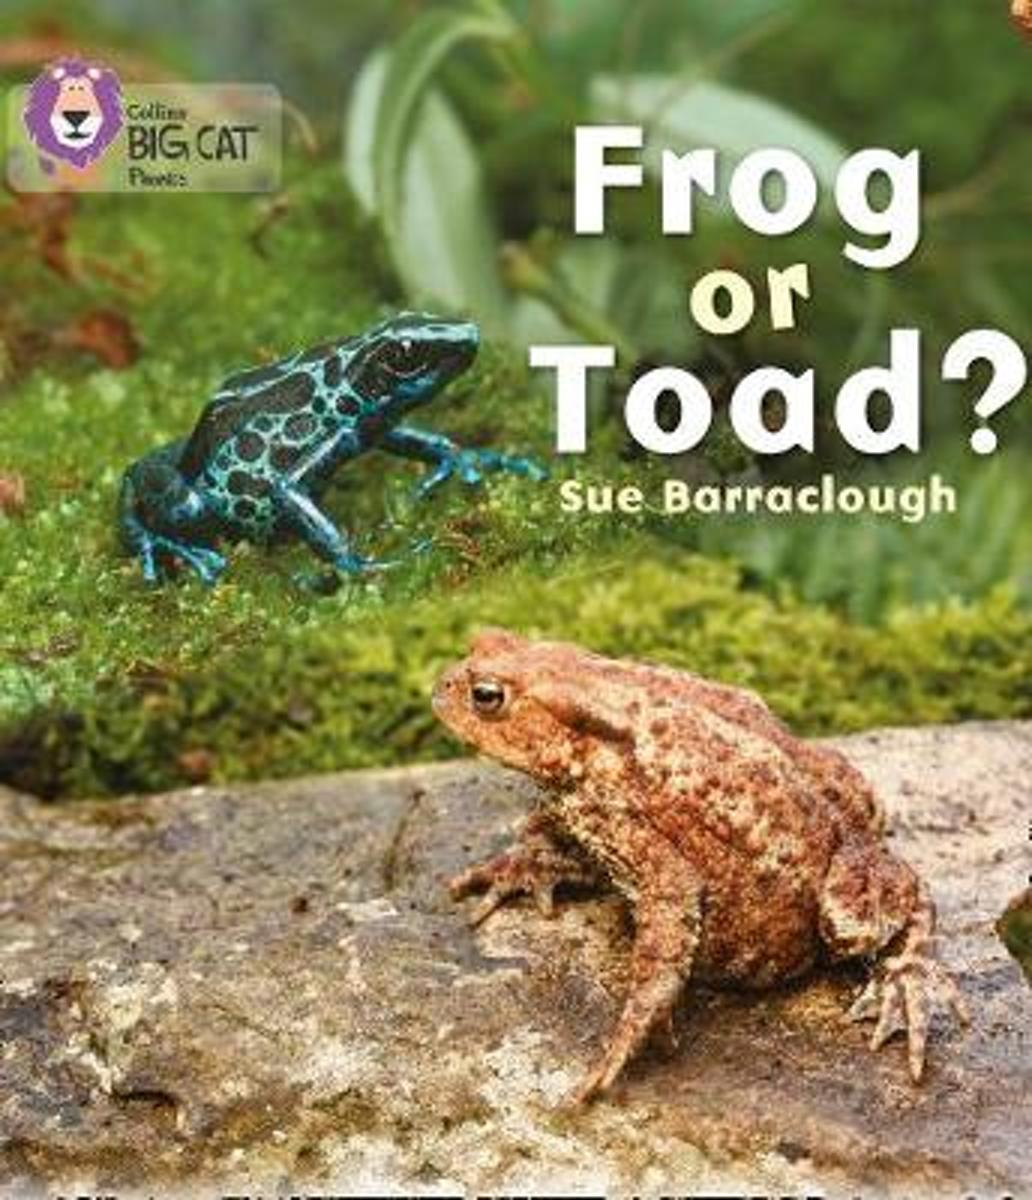 Frog or Toad? image